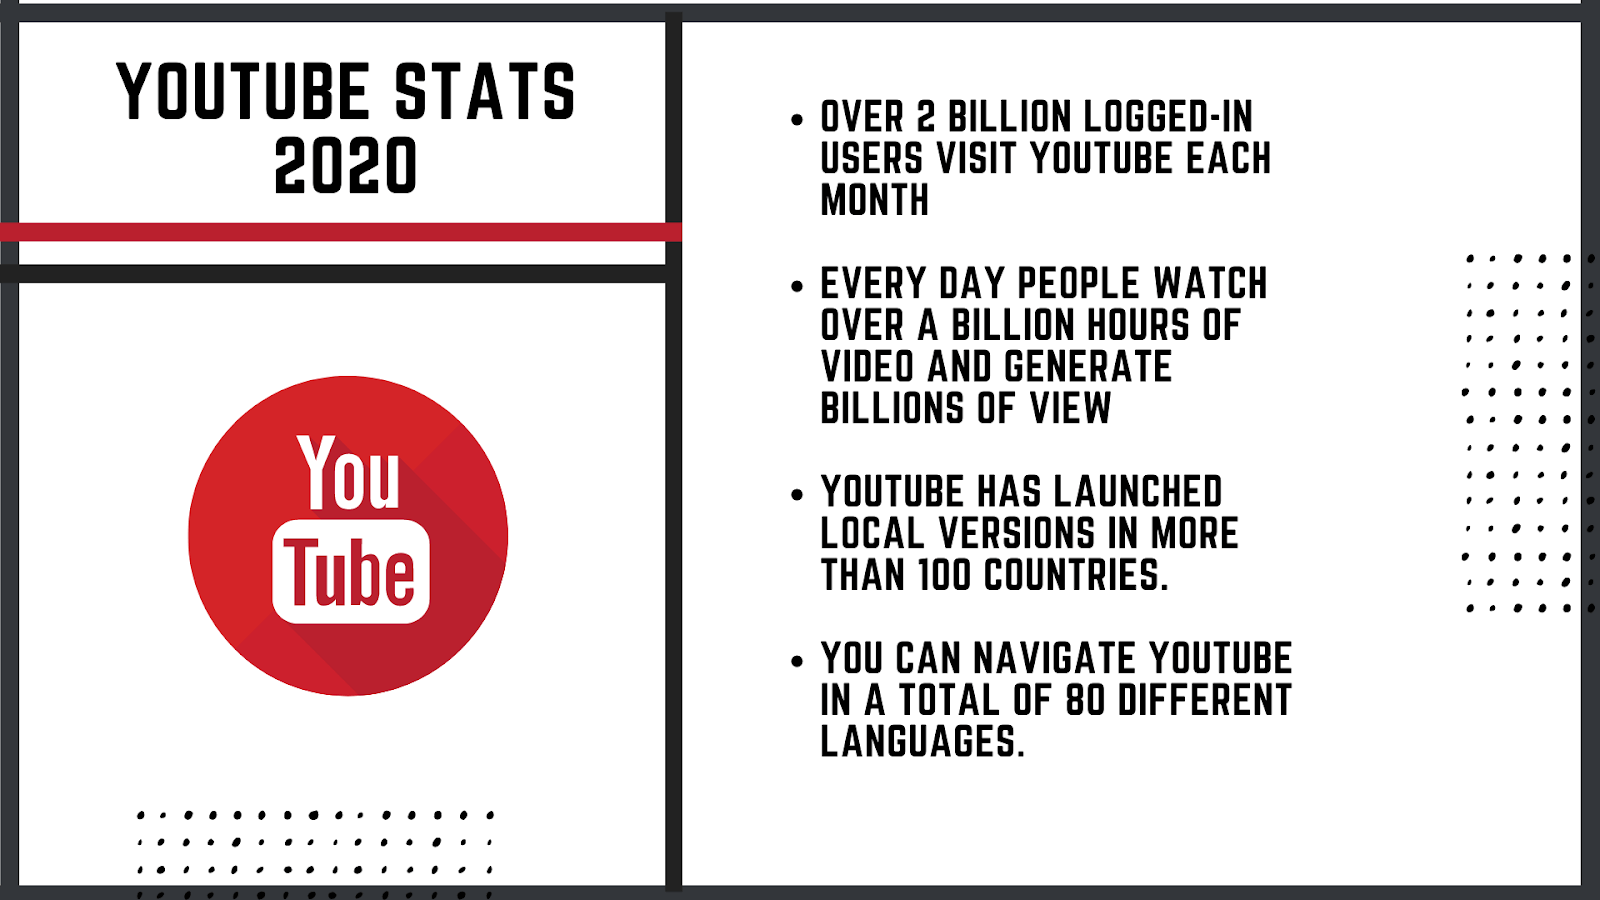 Youtube 2020 statistics on usage and traffic